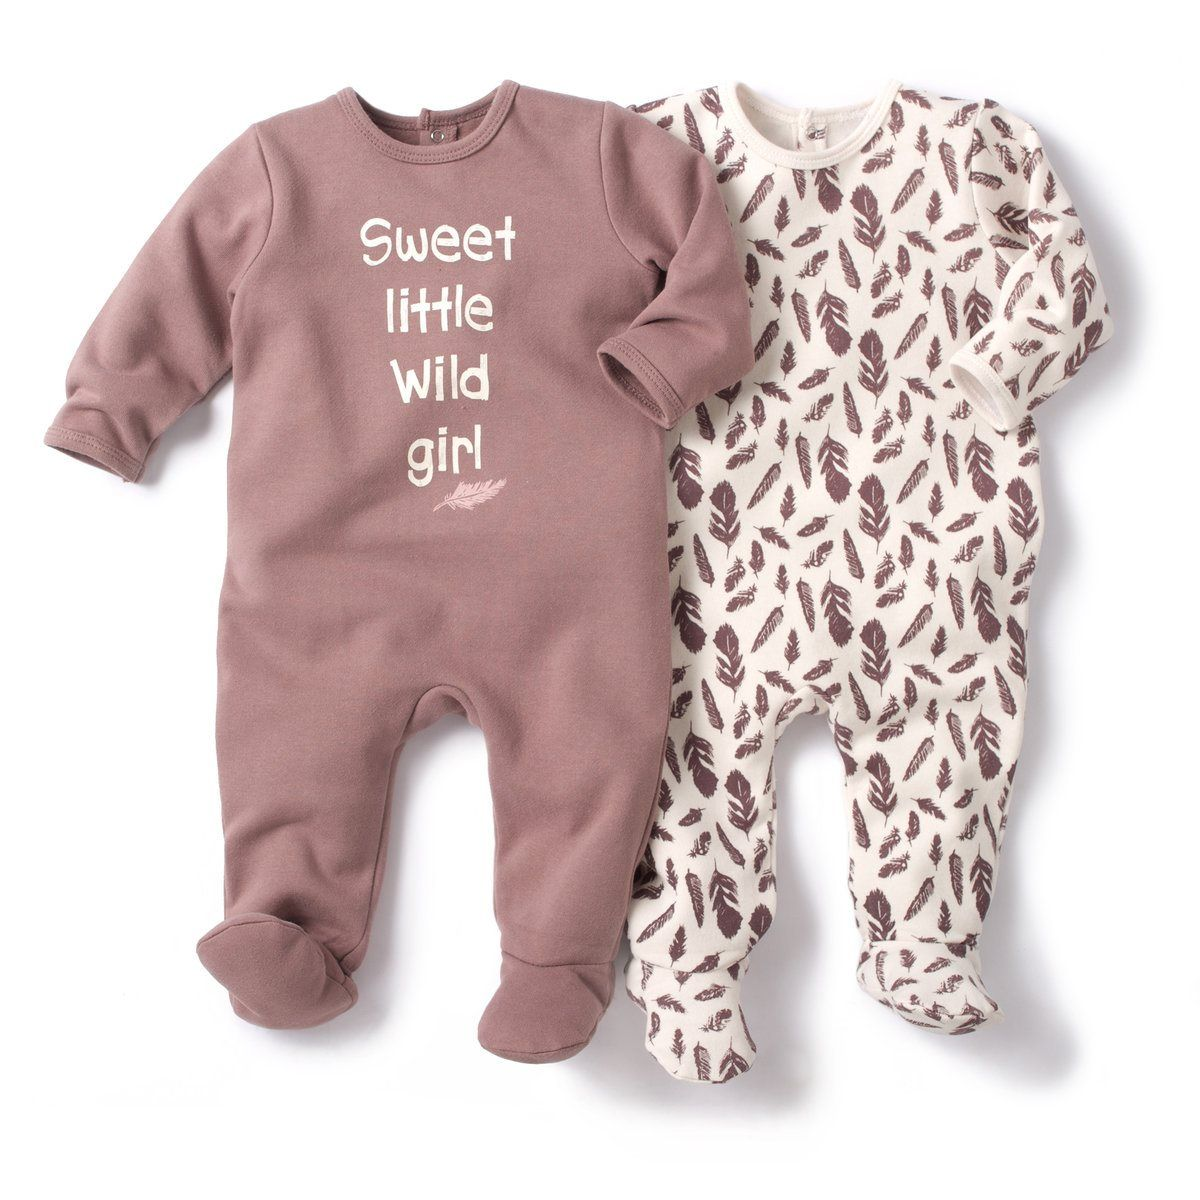 Pack of 8 Fleece Sleepsuits with Feet R baby : price, reviews and